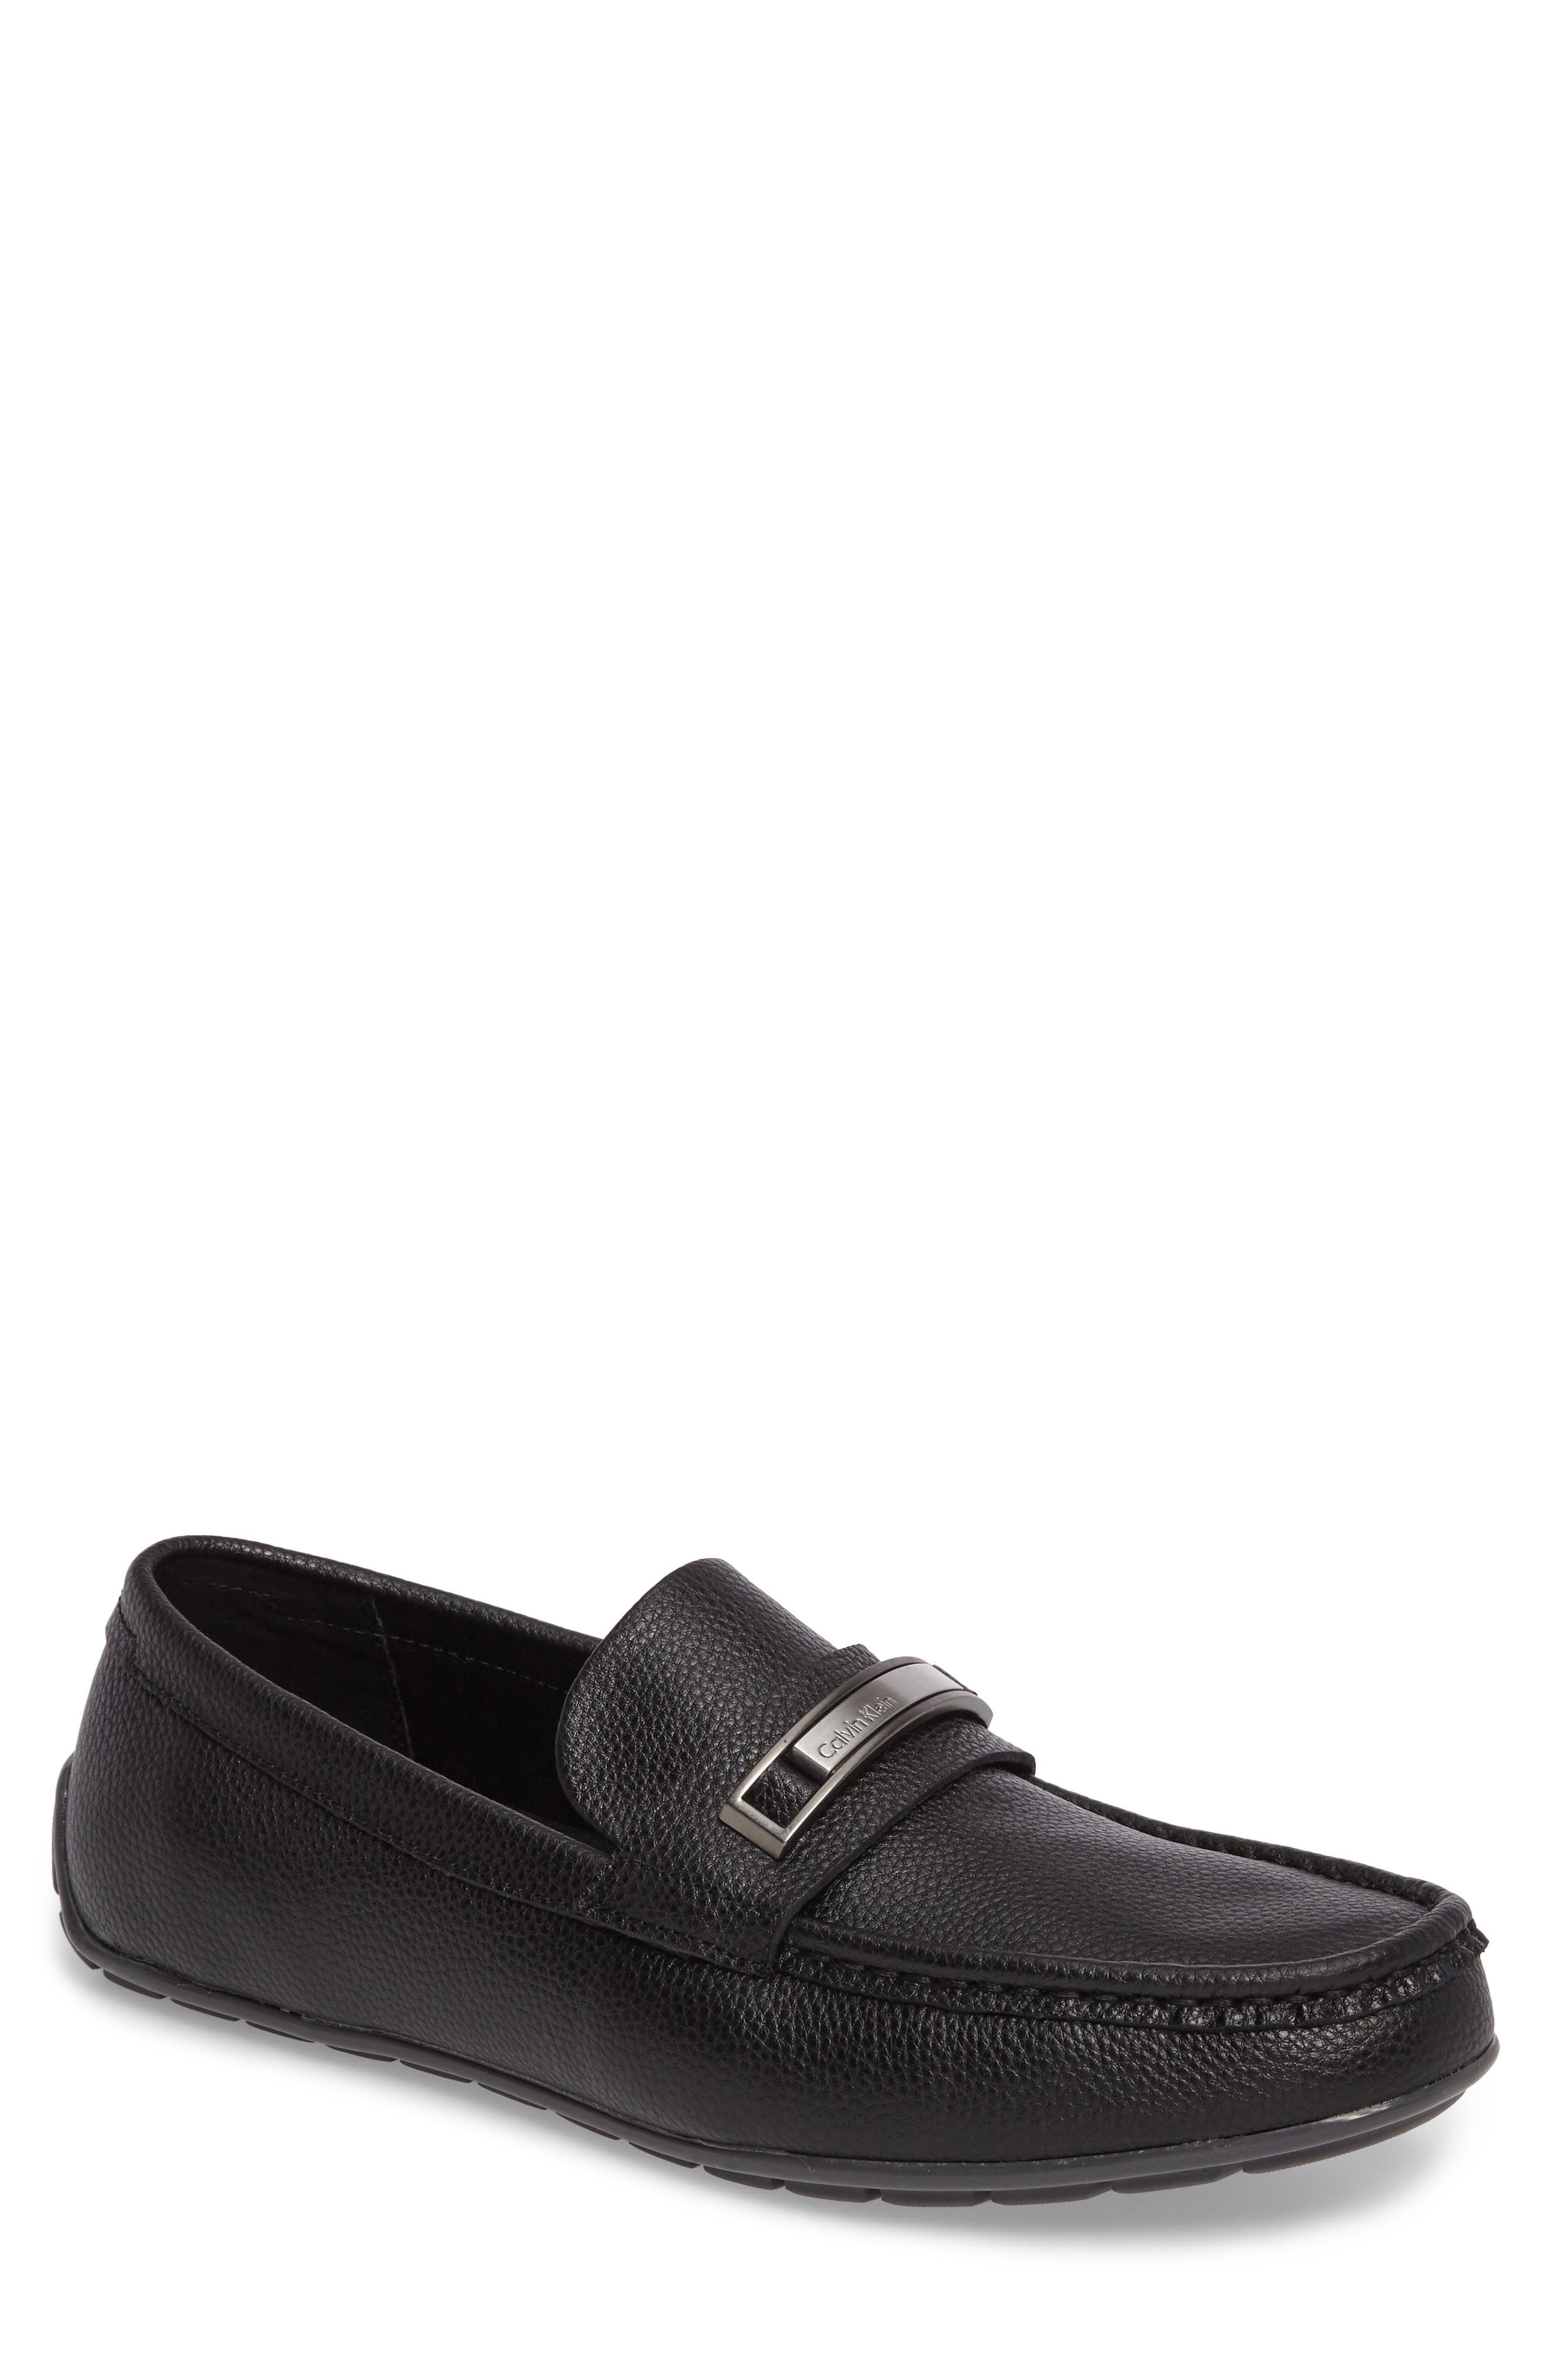 Irving Driving Loafer,                         Main,                         color, Black Tumbled Leather